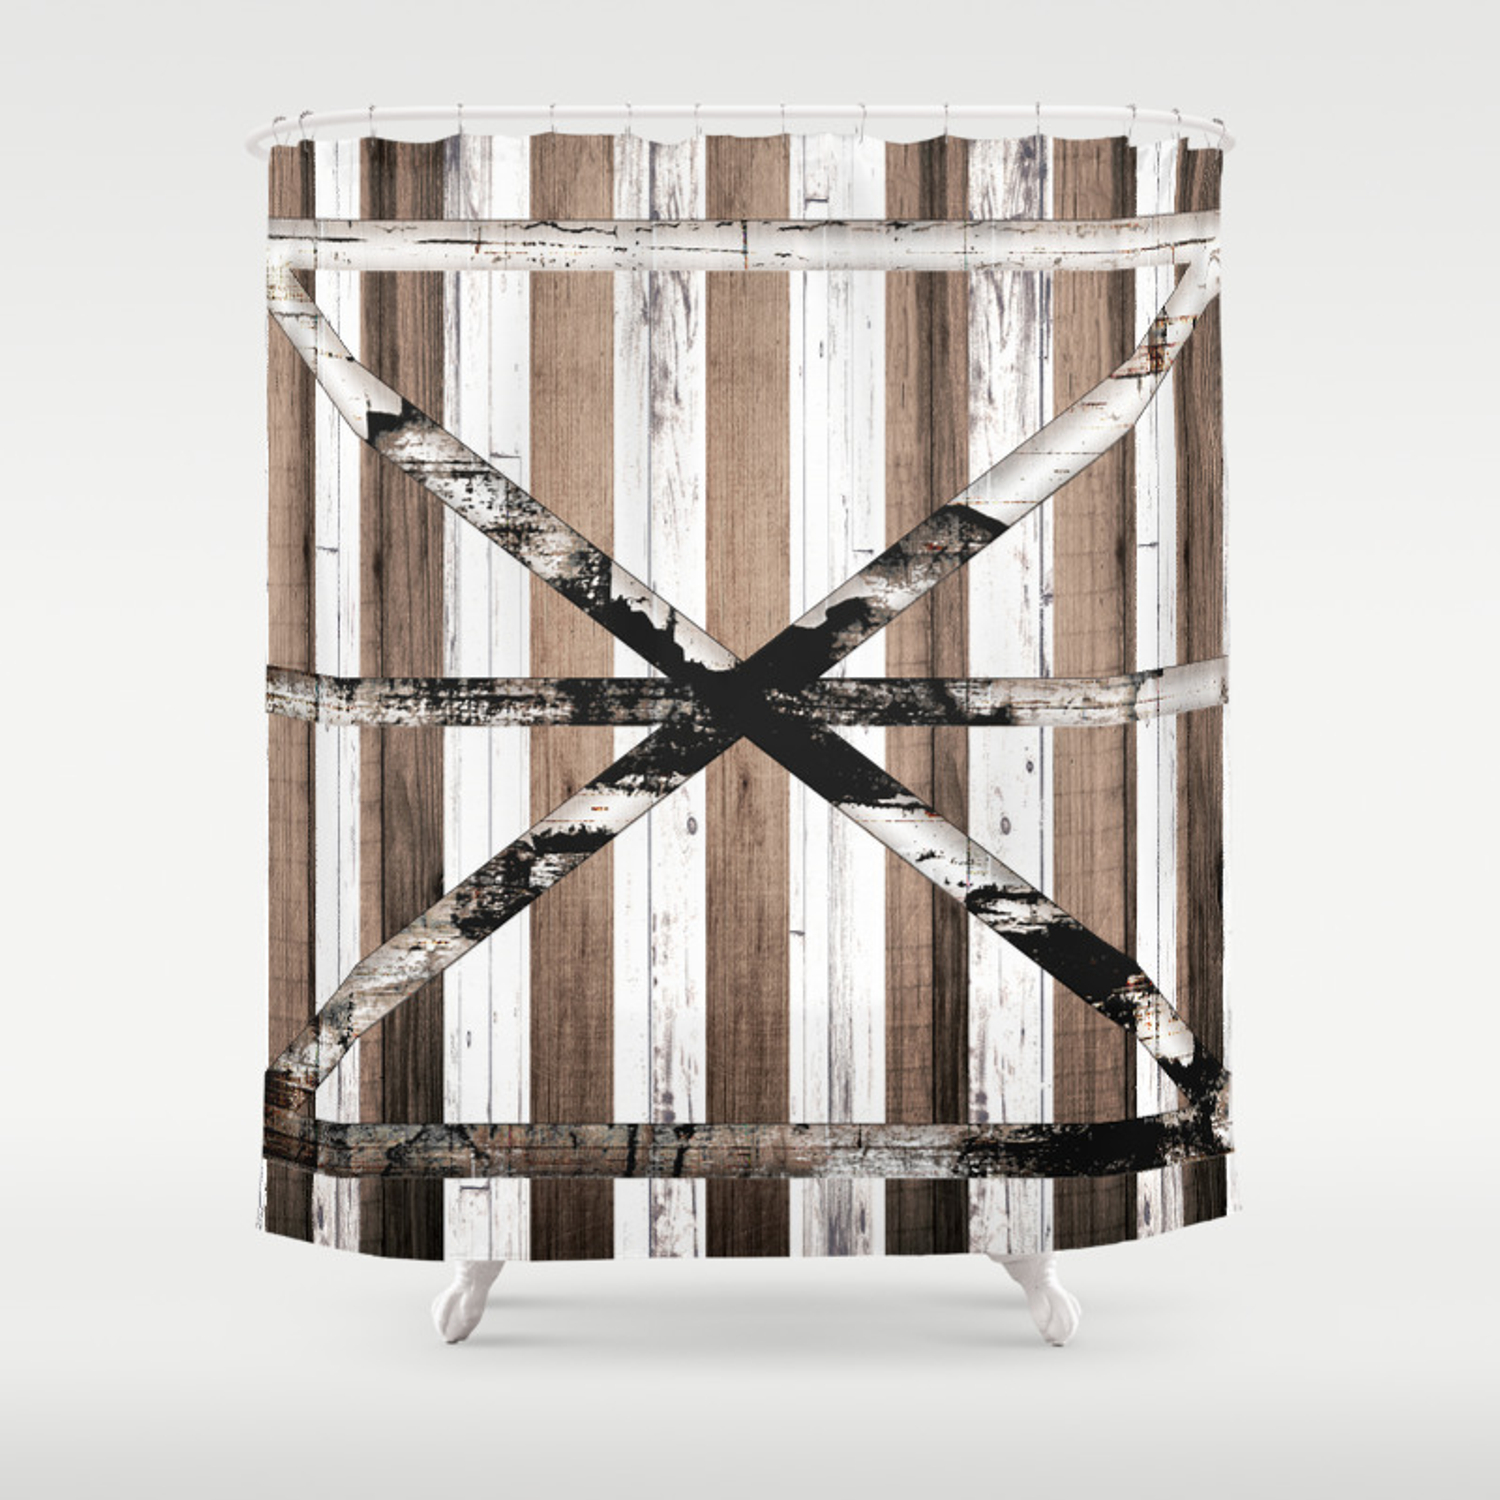 Rustic Multi Wood Barn Door Shower Curtain